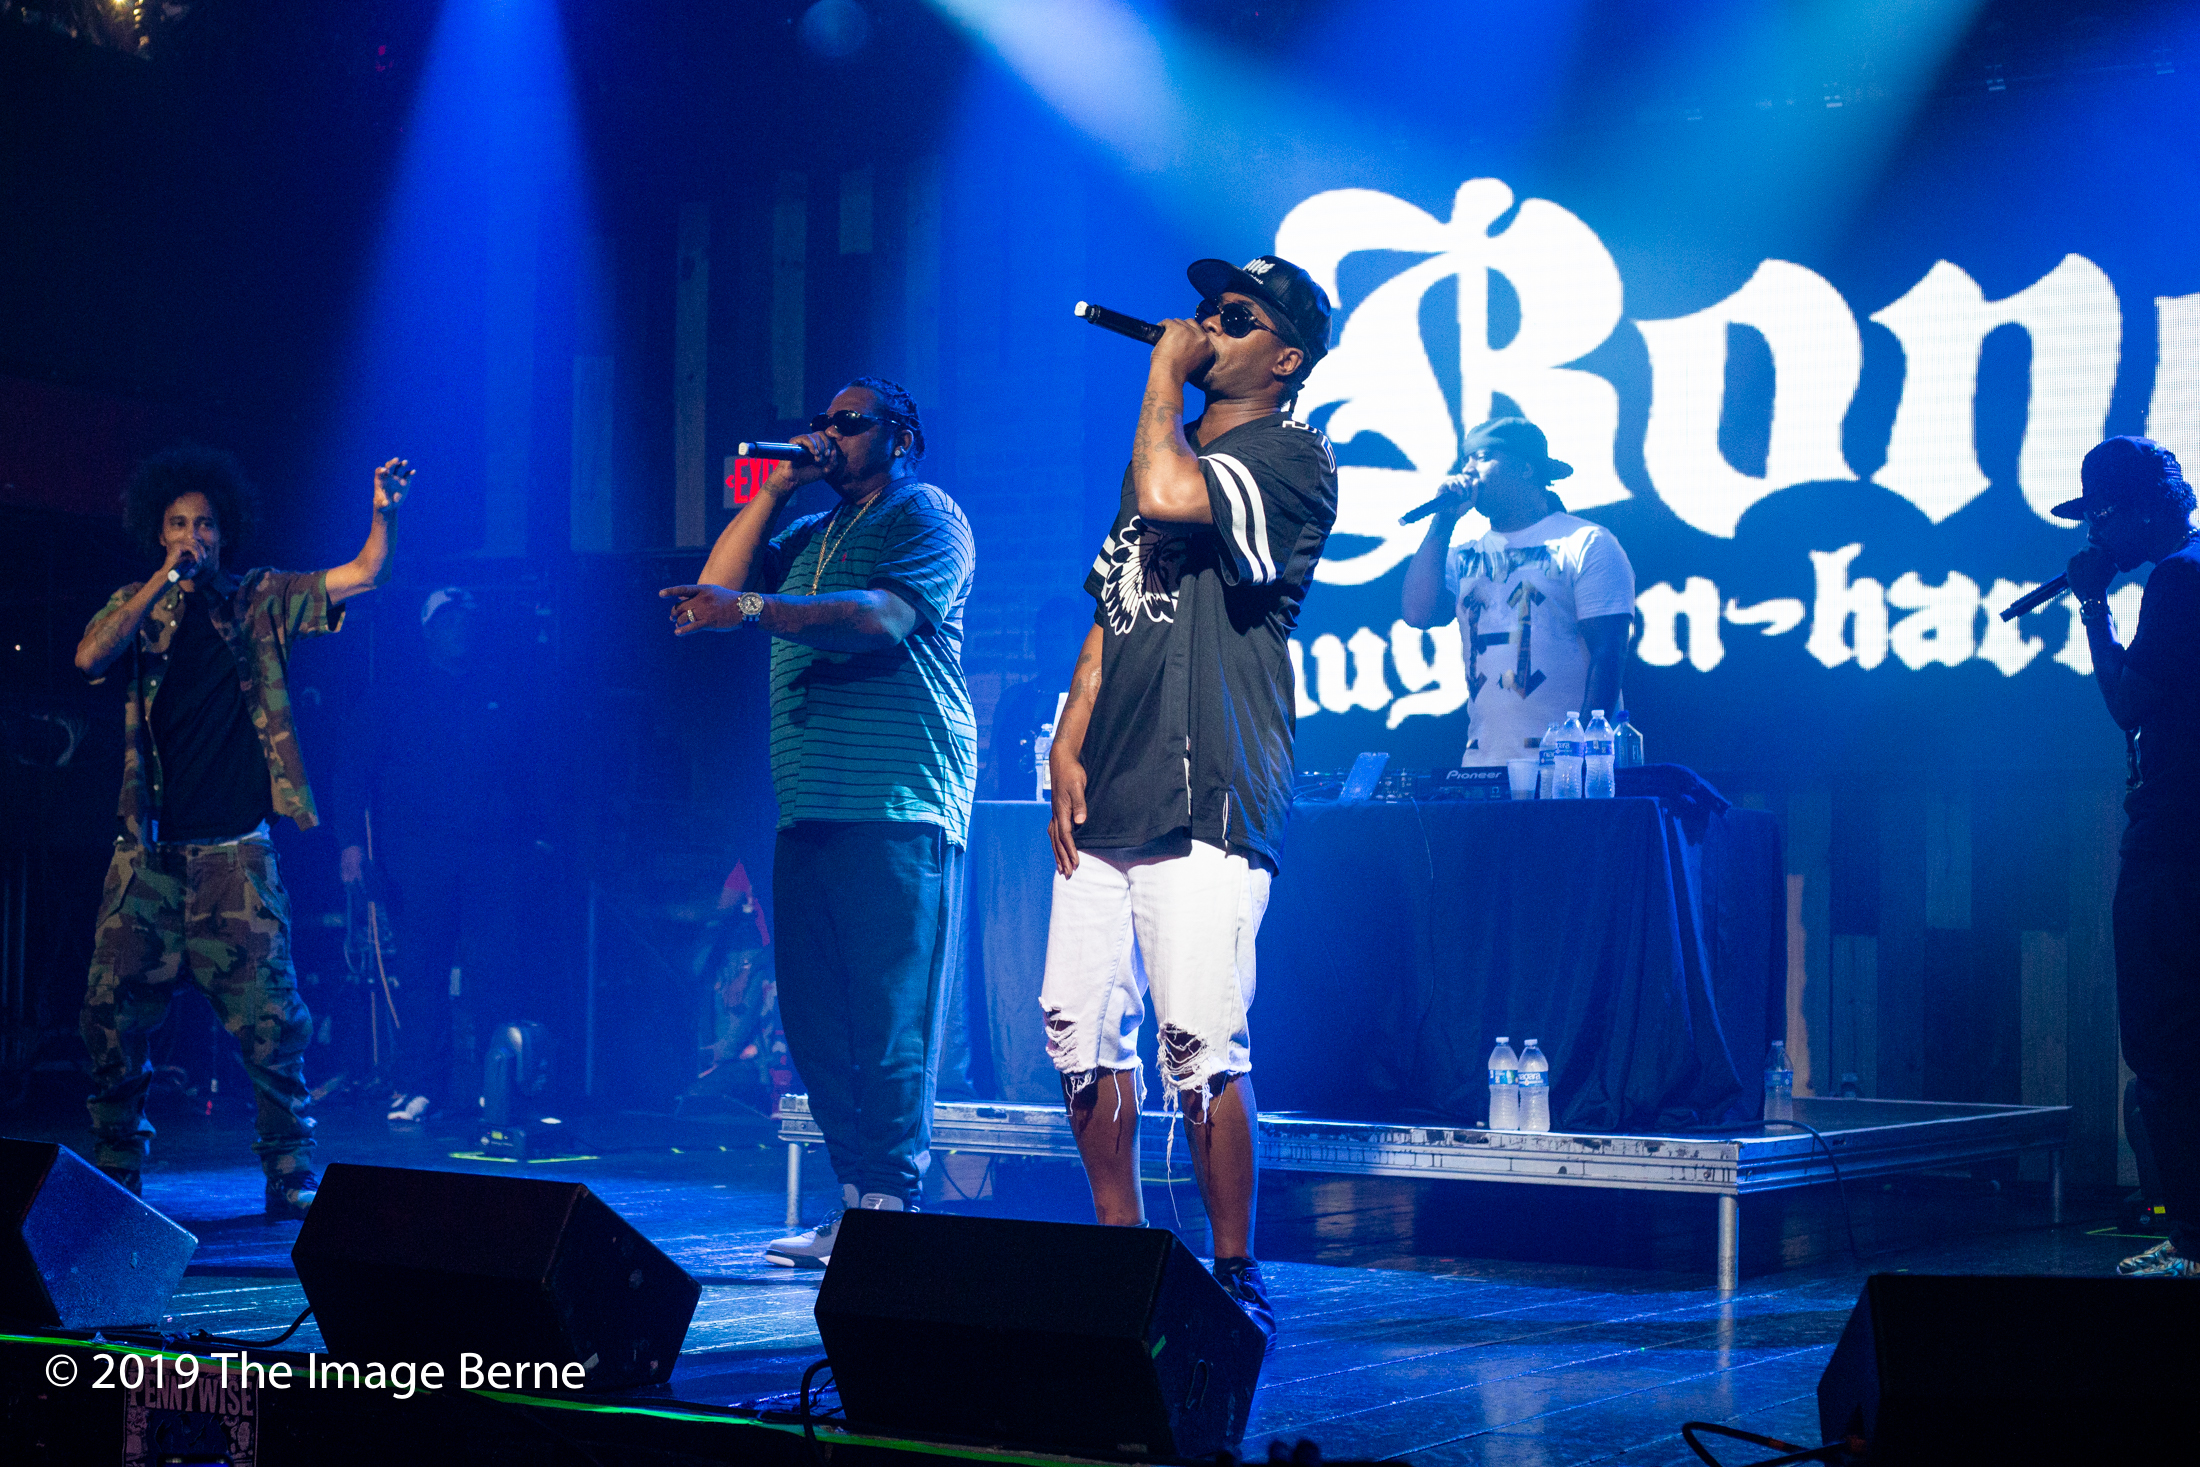 Krayzie Bone, Wish Bone, Flesh-N-Bone, Layzie Bone, and Bizzy Bone-099.jpg